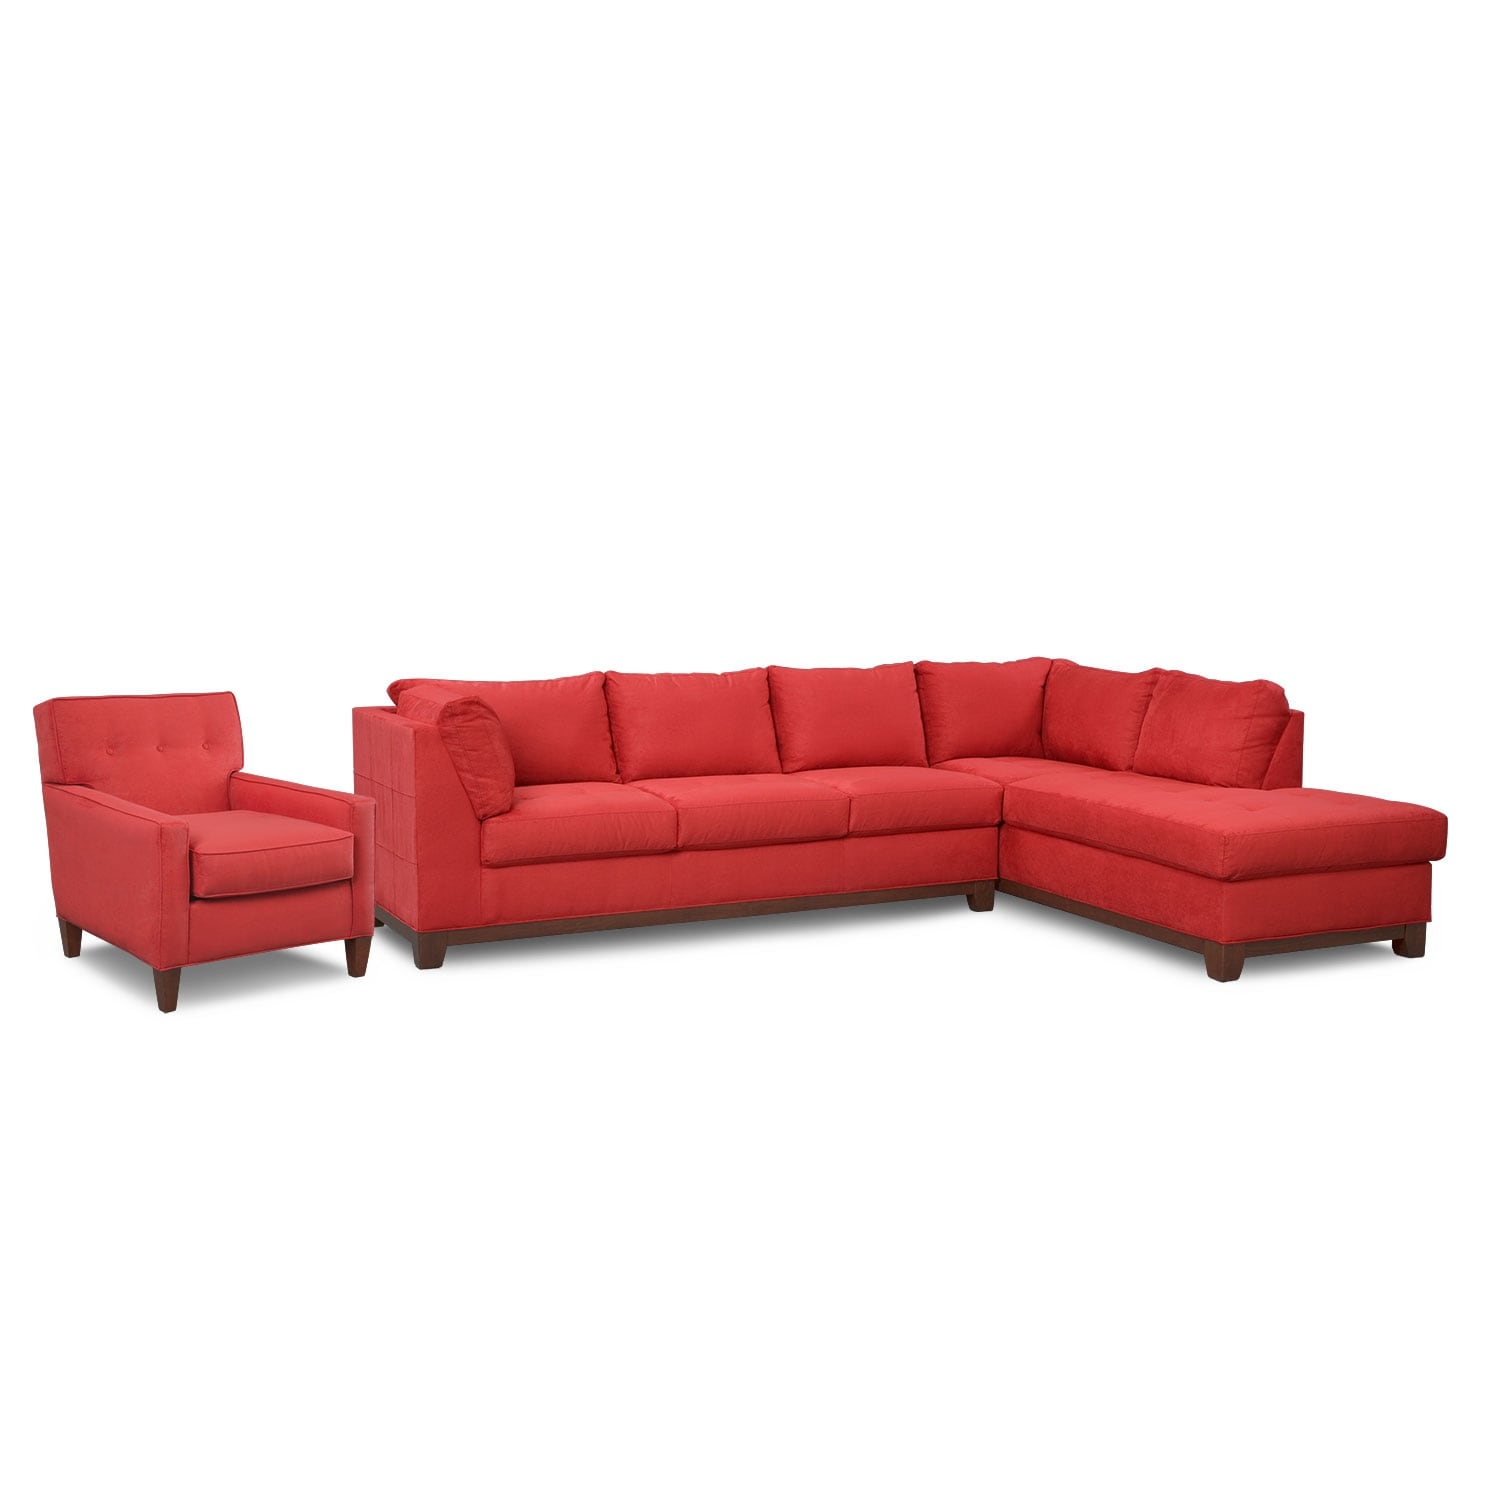 Soho 2 piece sectional with right facing chaise red for 2 piece chaise sectional